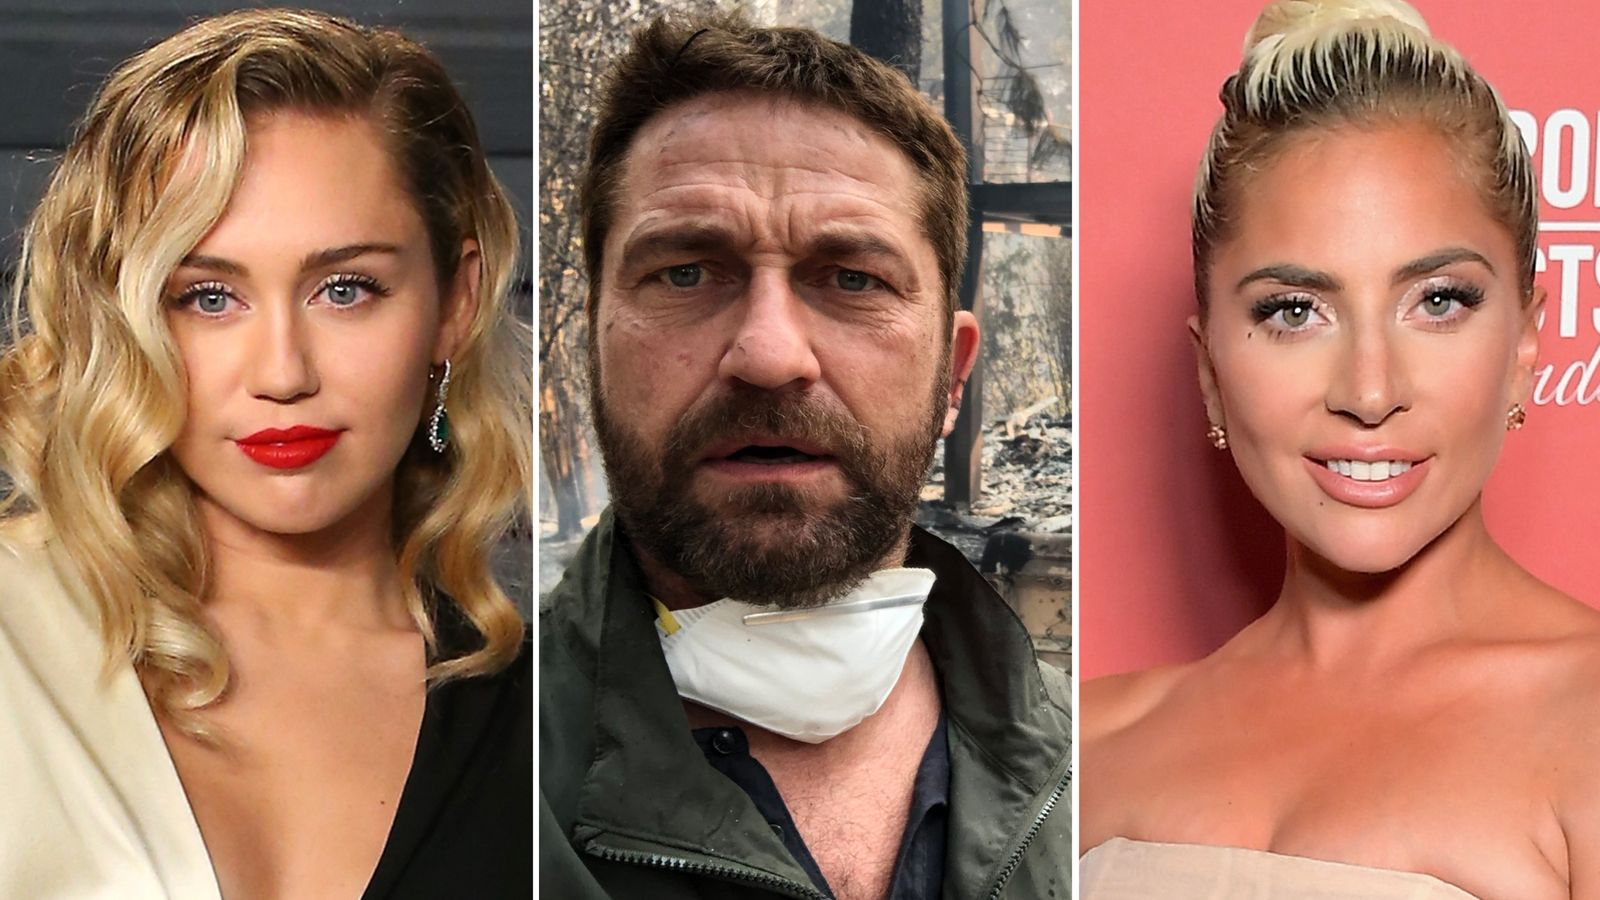 The celebrities caught up in the California wildfires